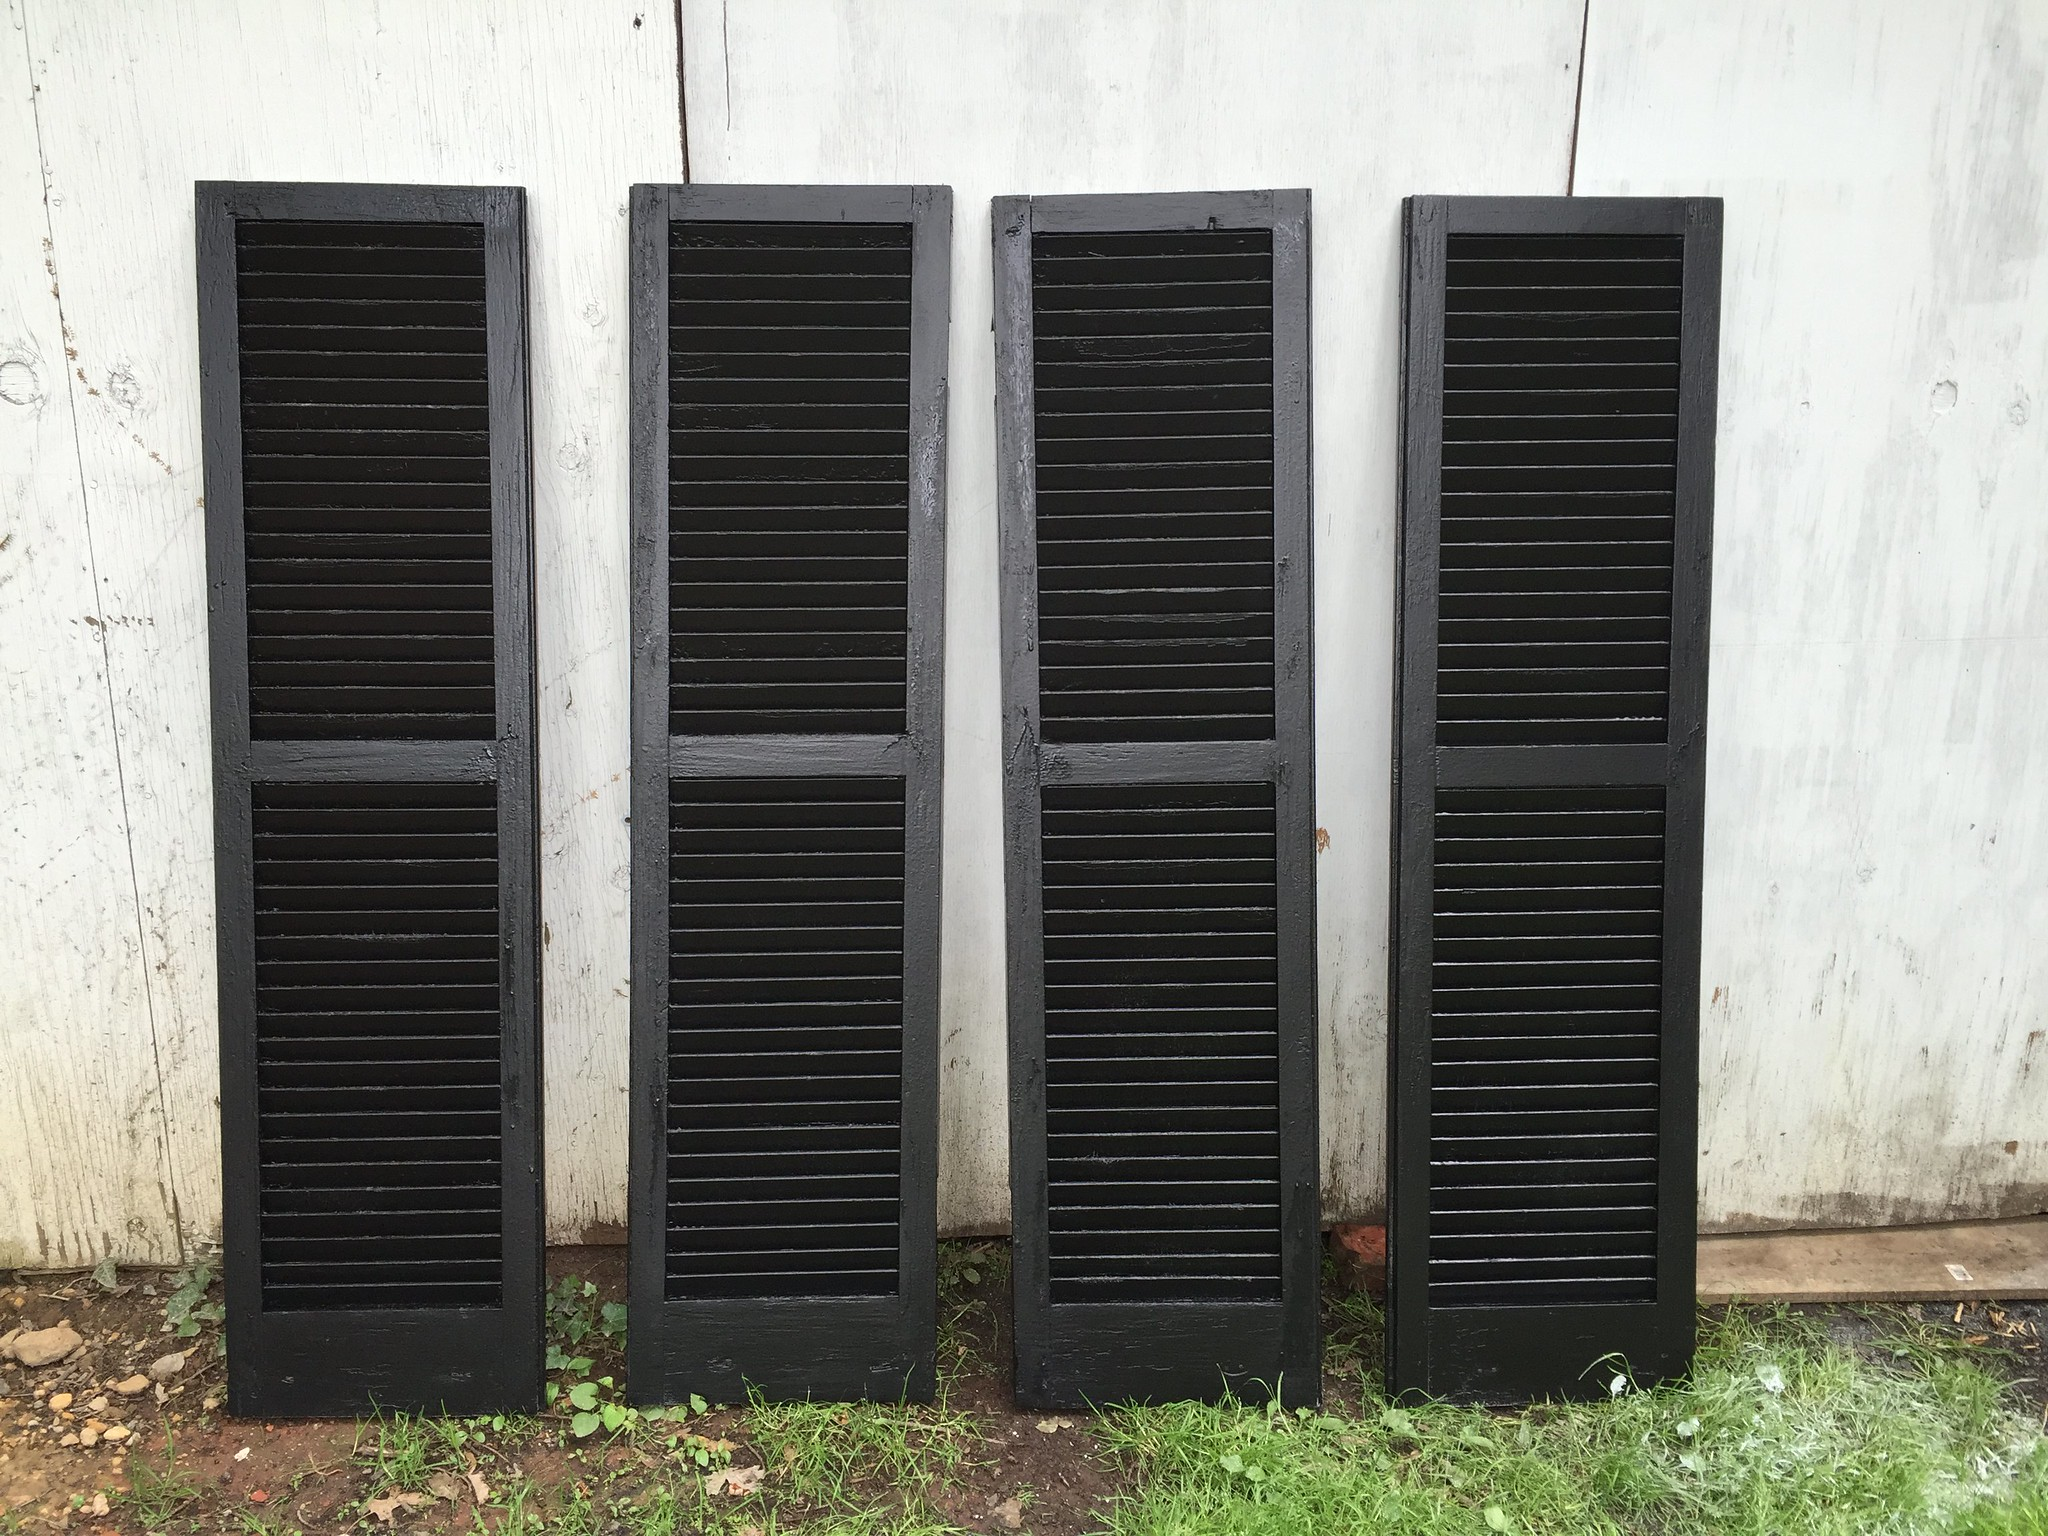 Painted shutters